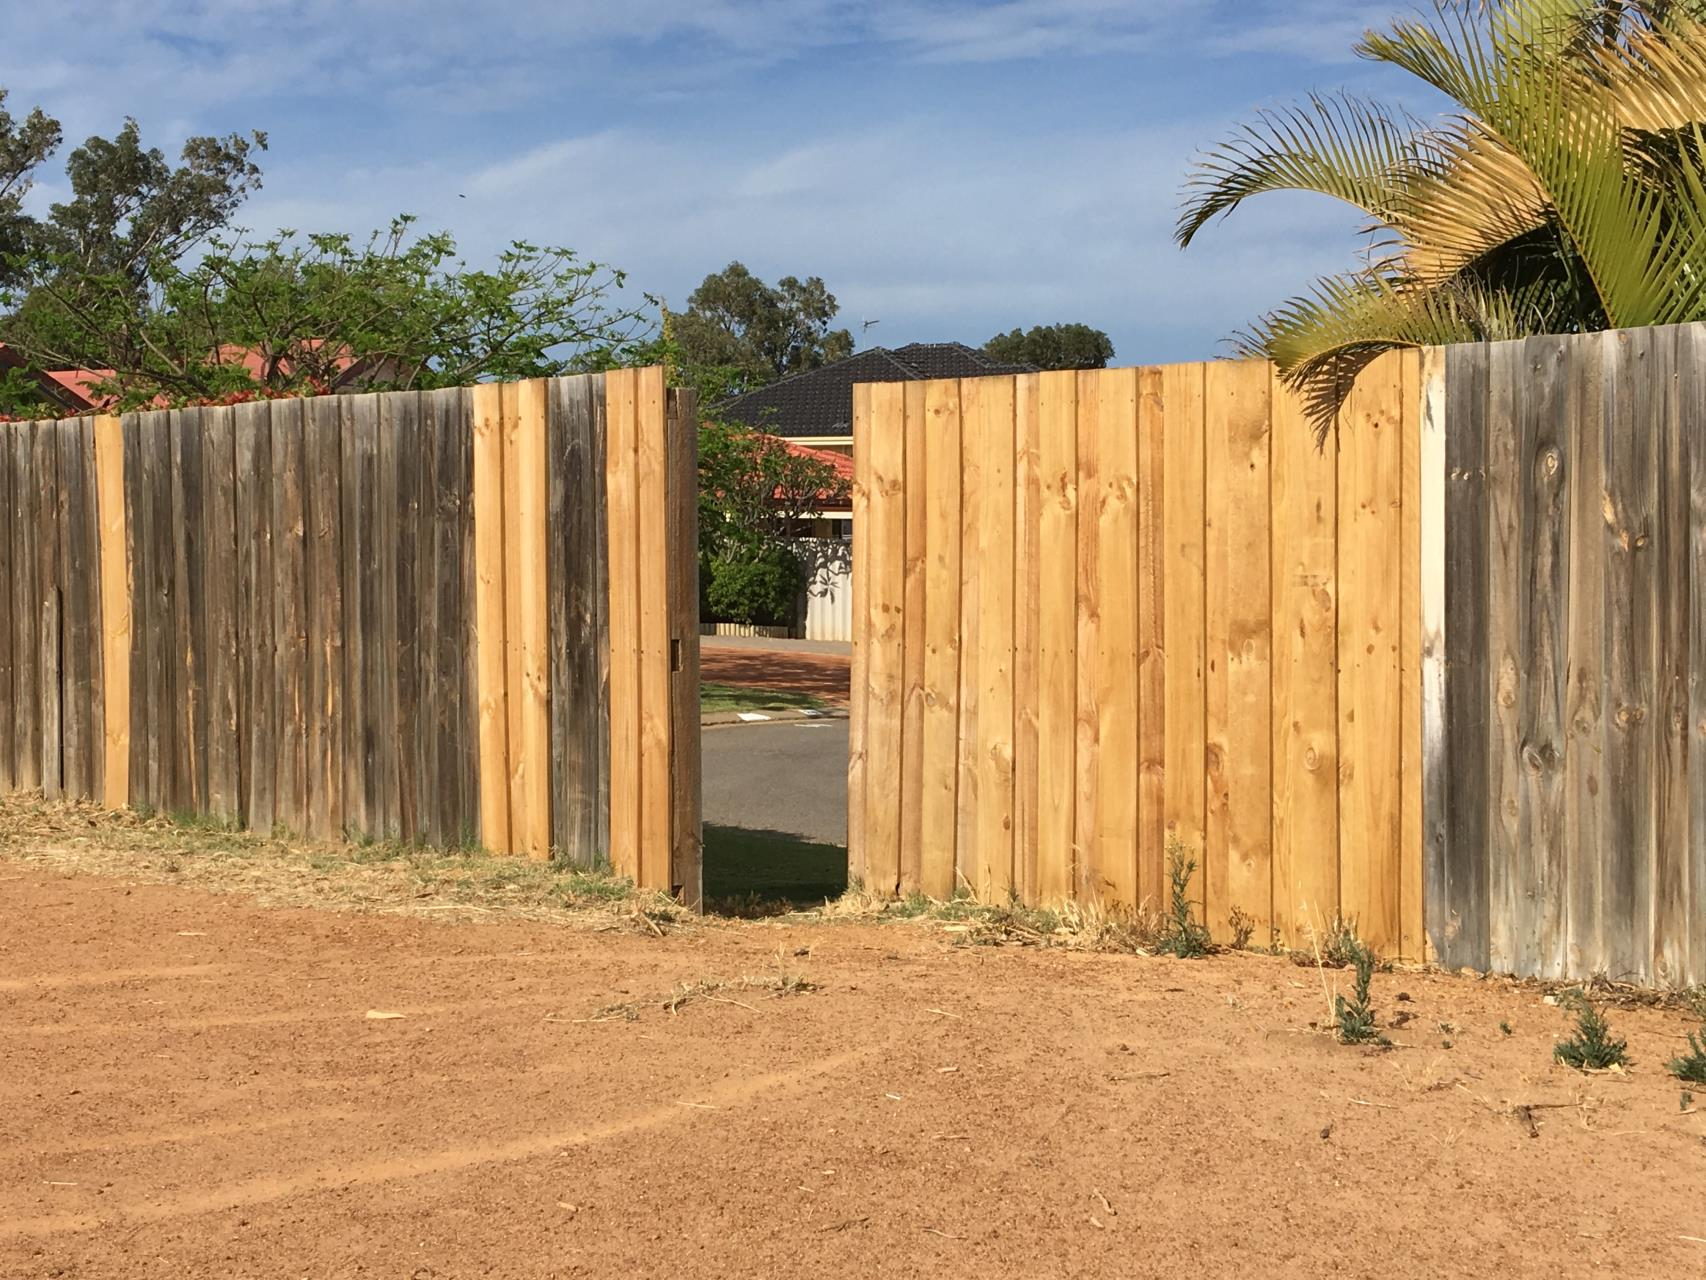 Fence opening